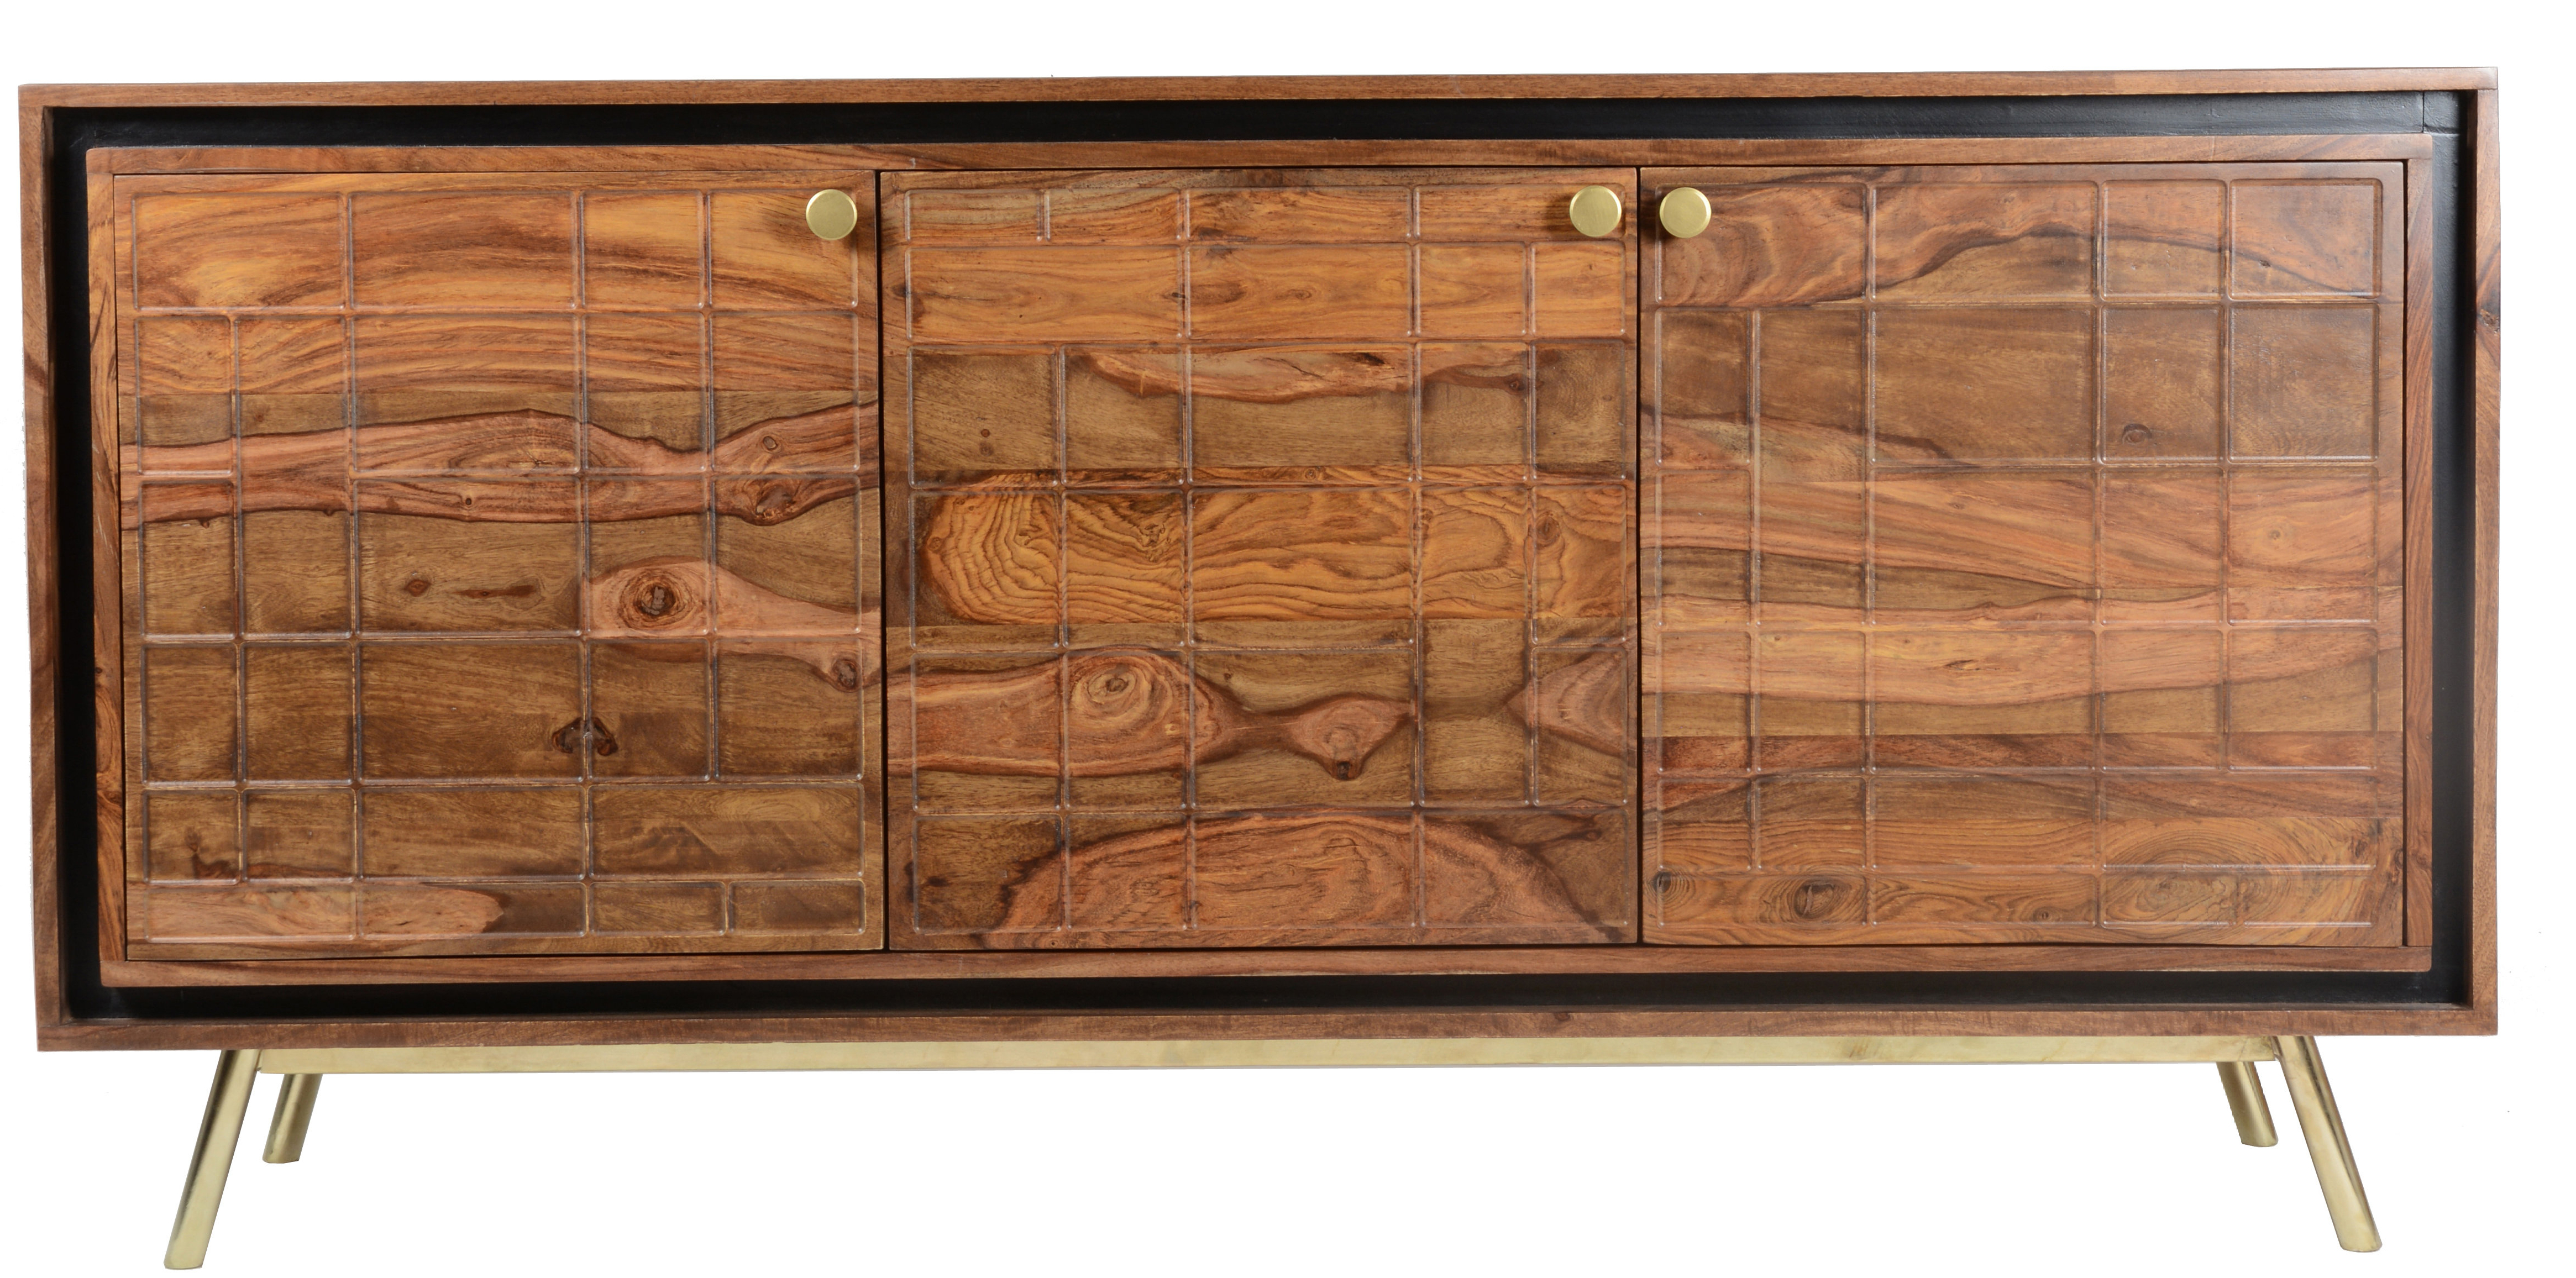 Mid Century Modern Sideboard / Credenza Sideboards & Buffets Within Longley Sideboards (View 11 of 20)